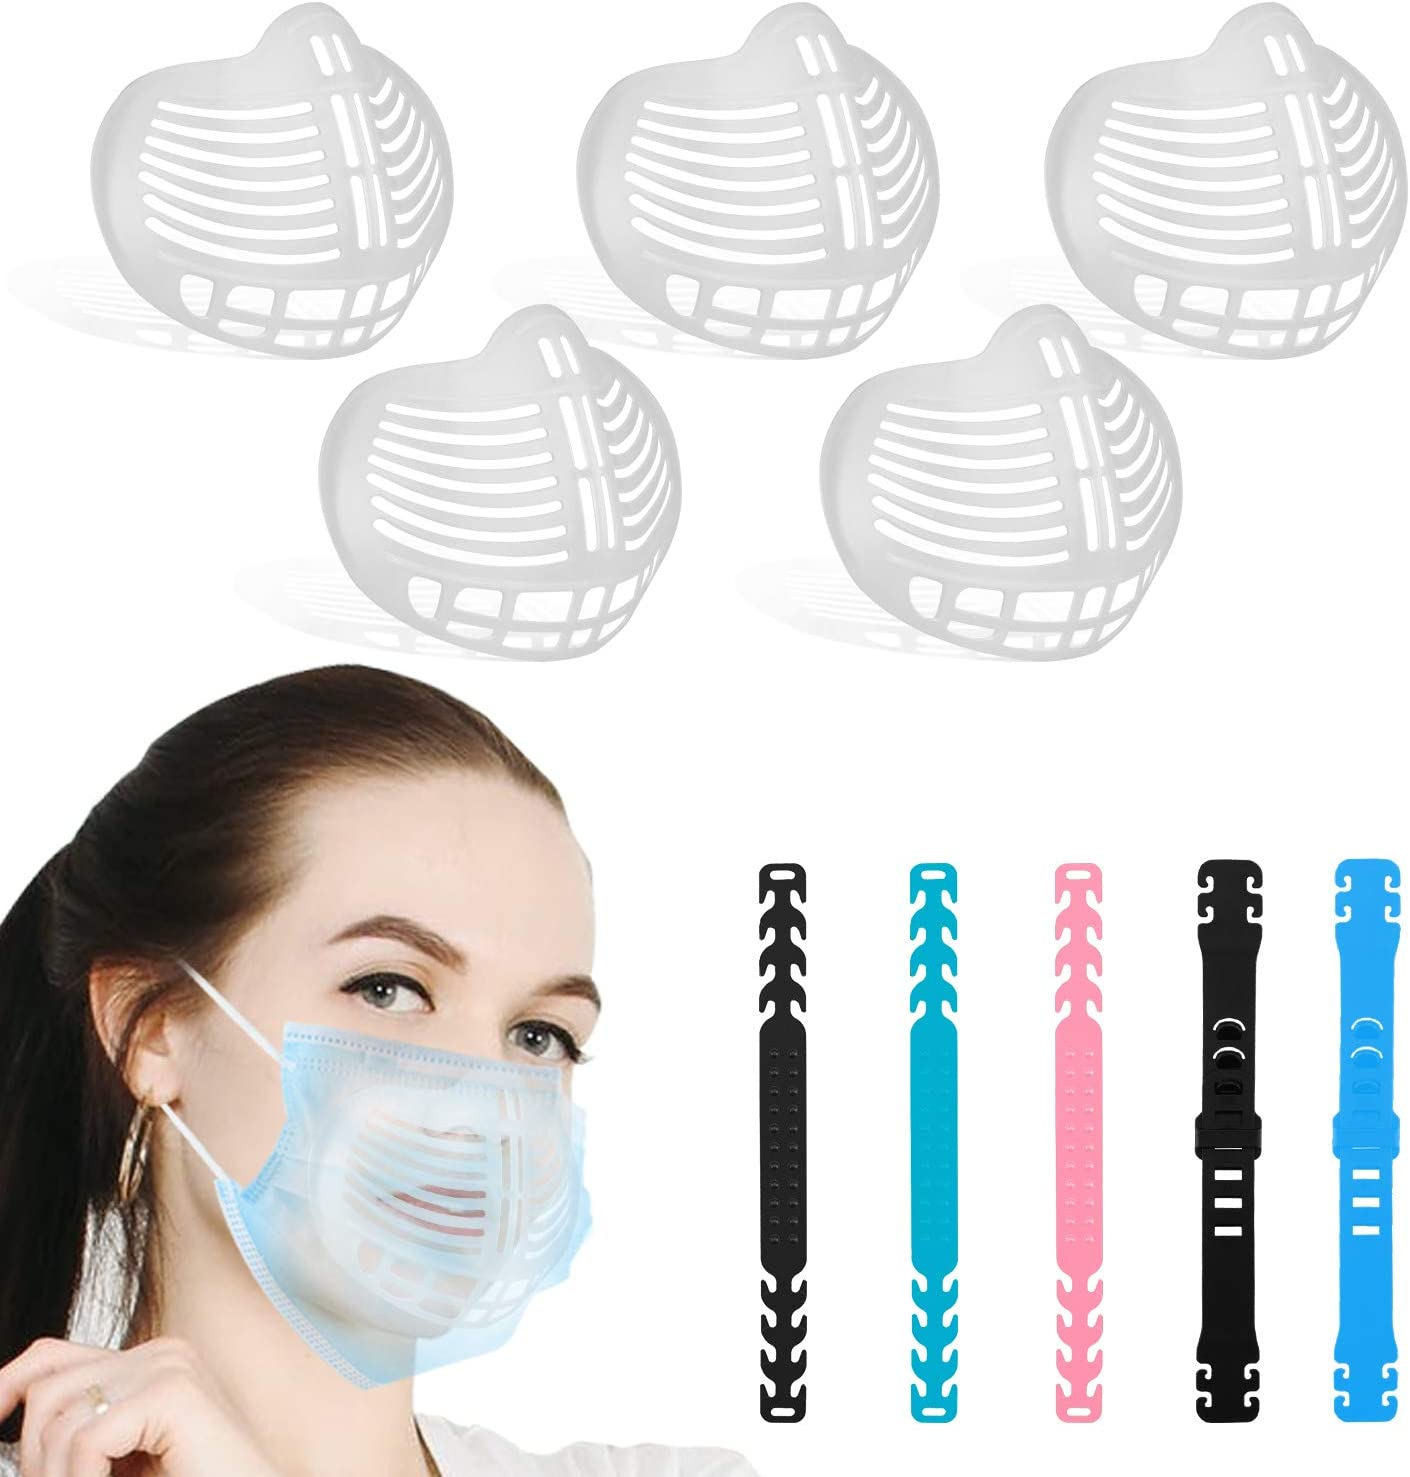 5+5PCS]3D Face Bracket Inner Support Frame for Adults, M-a-s-k spacer for  breathing, Cloth Cool Silicone Bracket, Suitable for Outdoor, Washable  Reusable Lipstick Protection - - Amazon.com